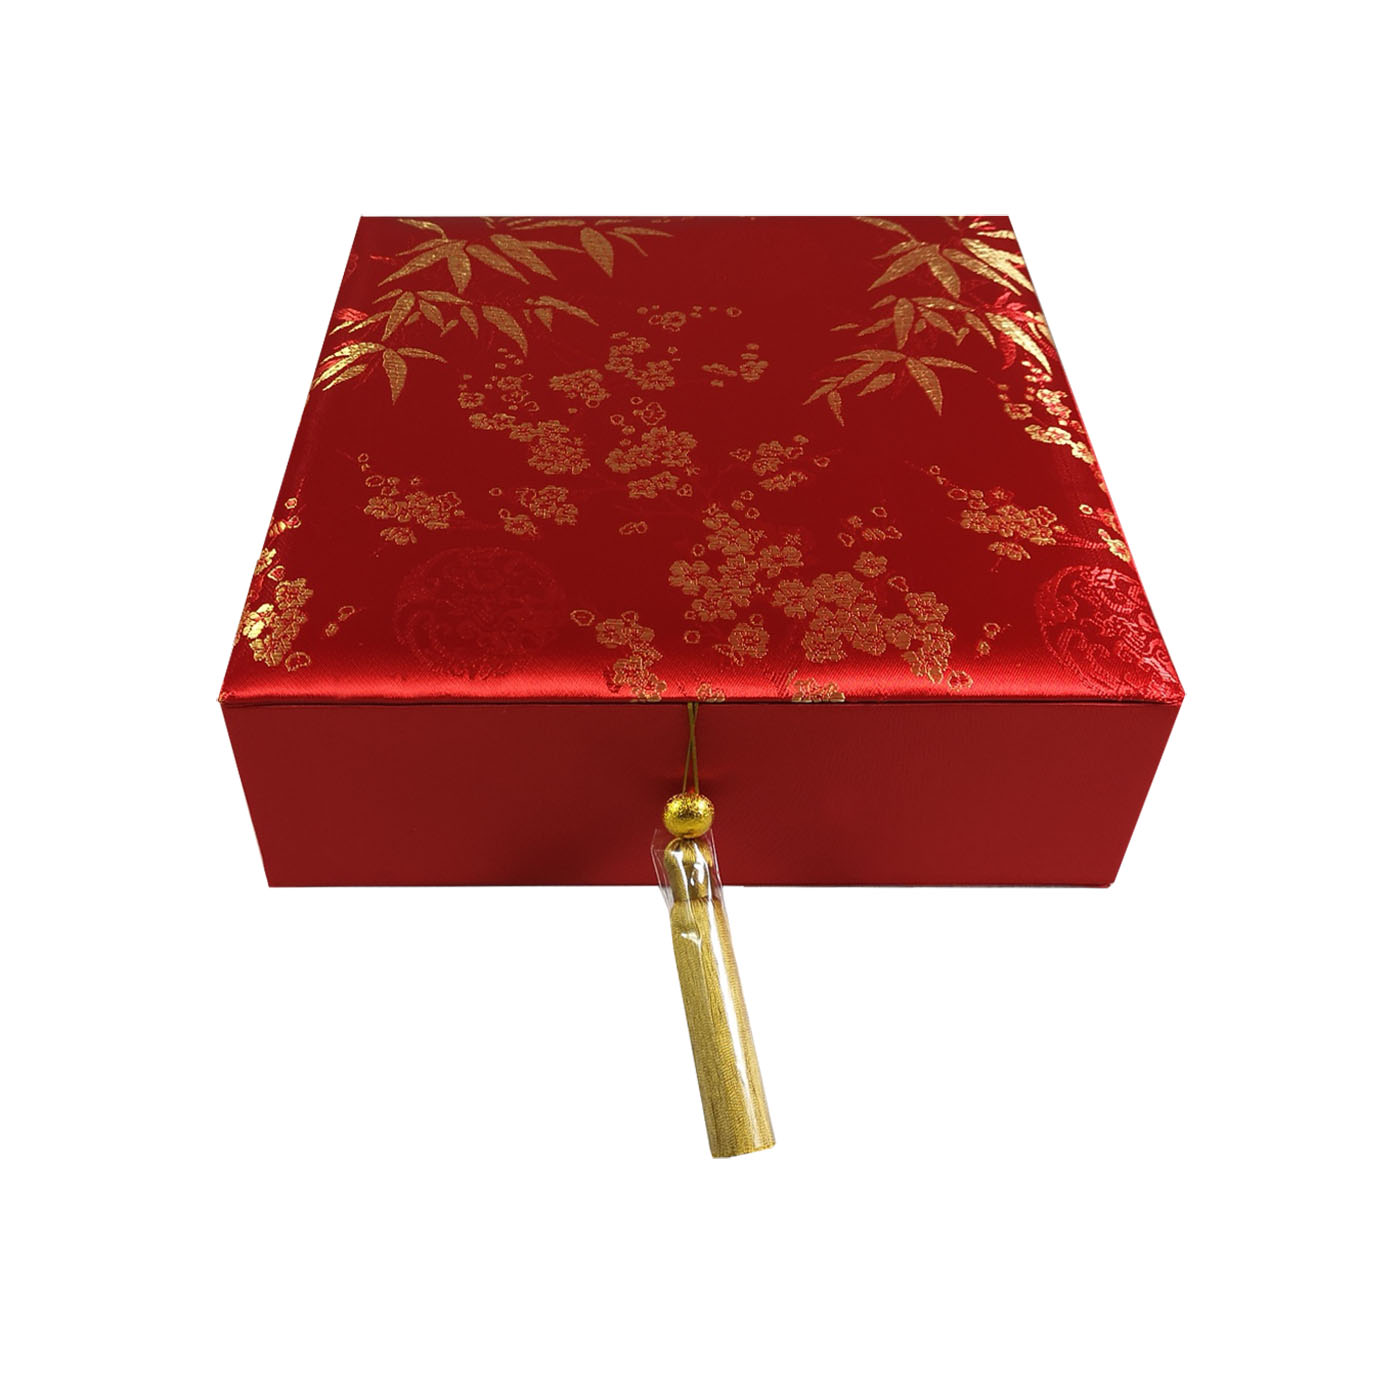 Chinese New Year Premium Gift Box